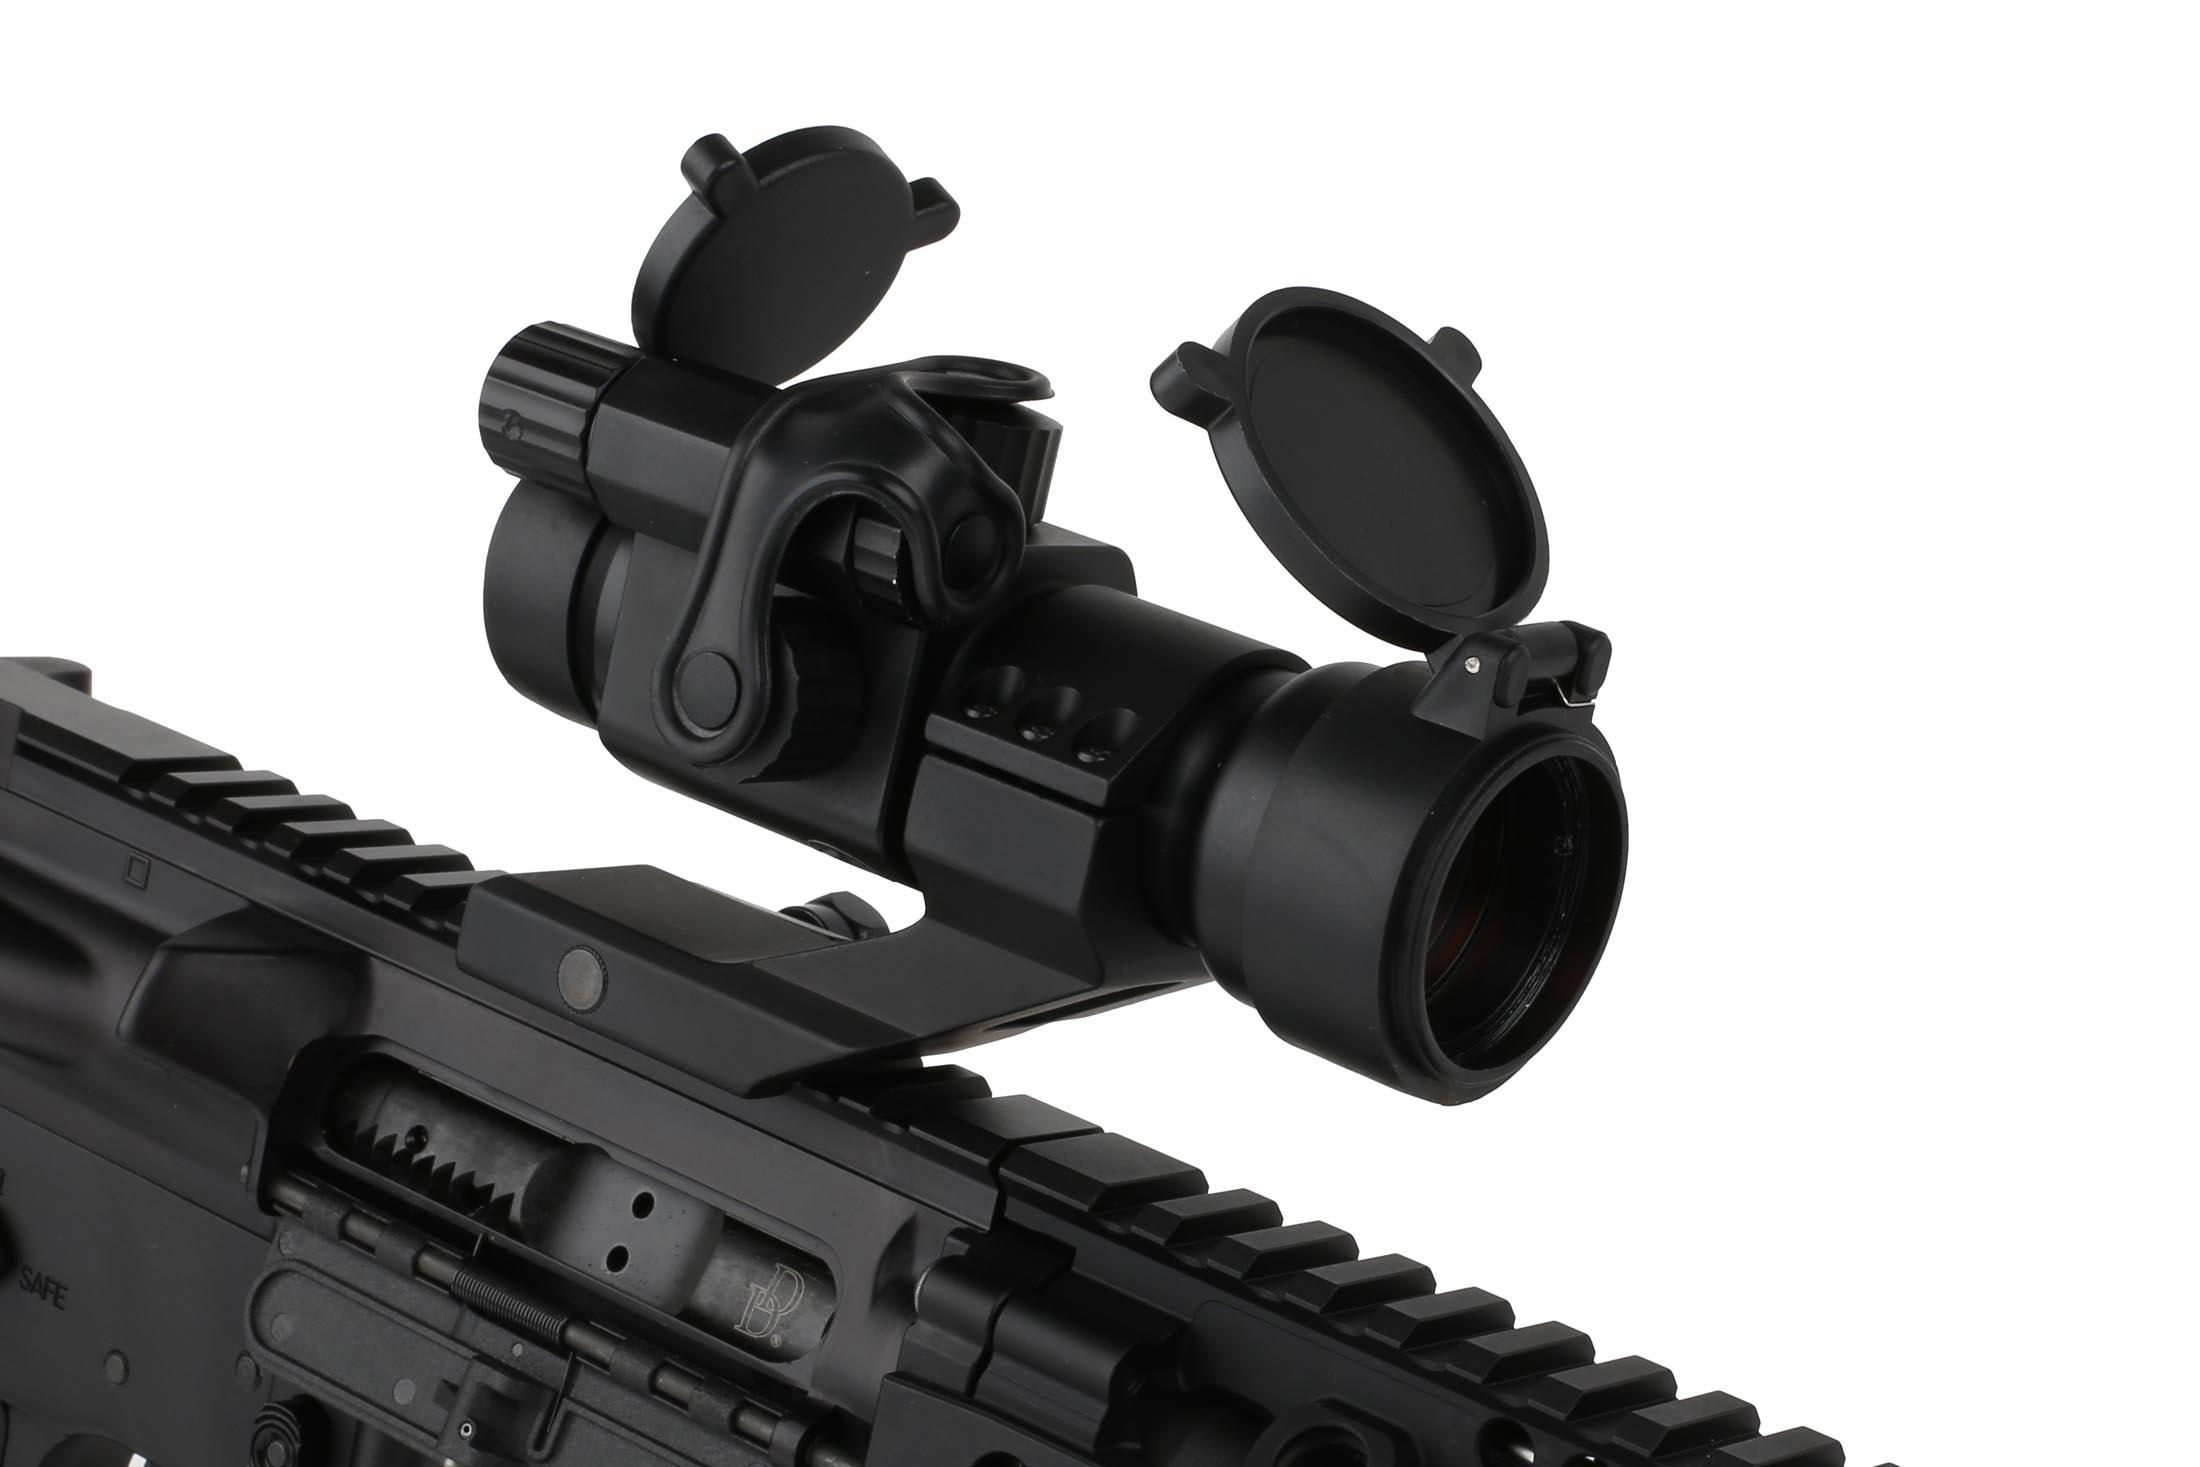 The Primary Arms AR 15 2 moa red dot sight comes with a limited lifetime warranty